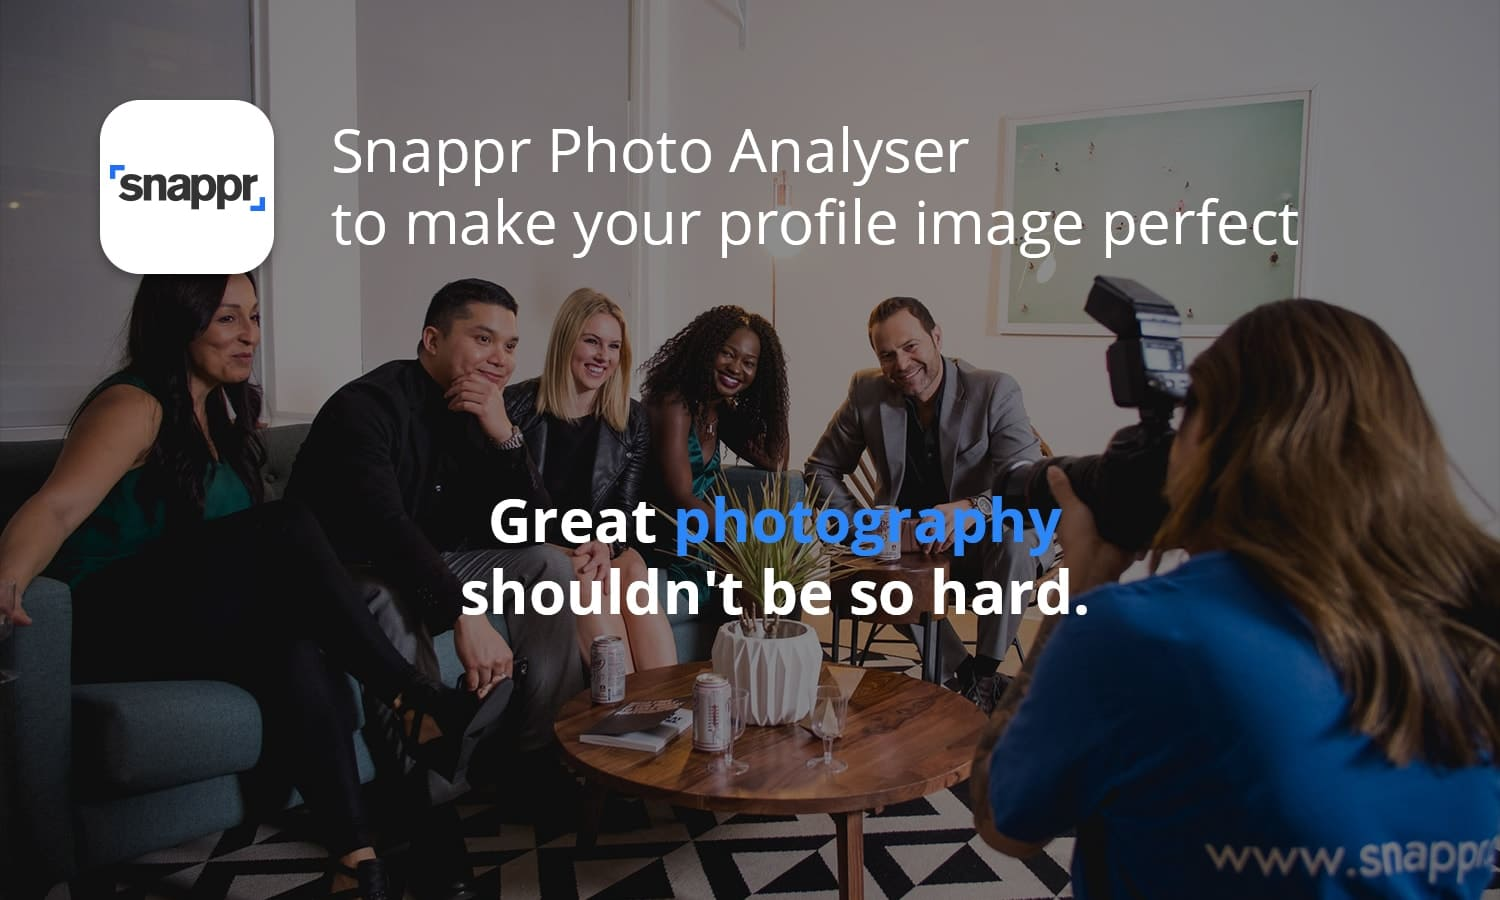 Snappr Photo Analyser